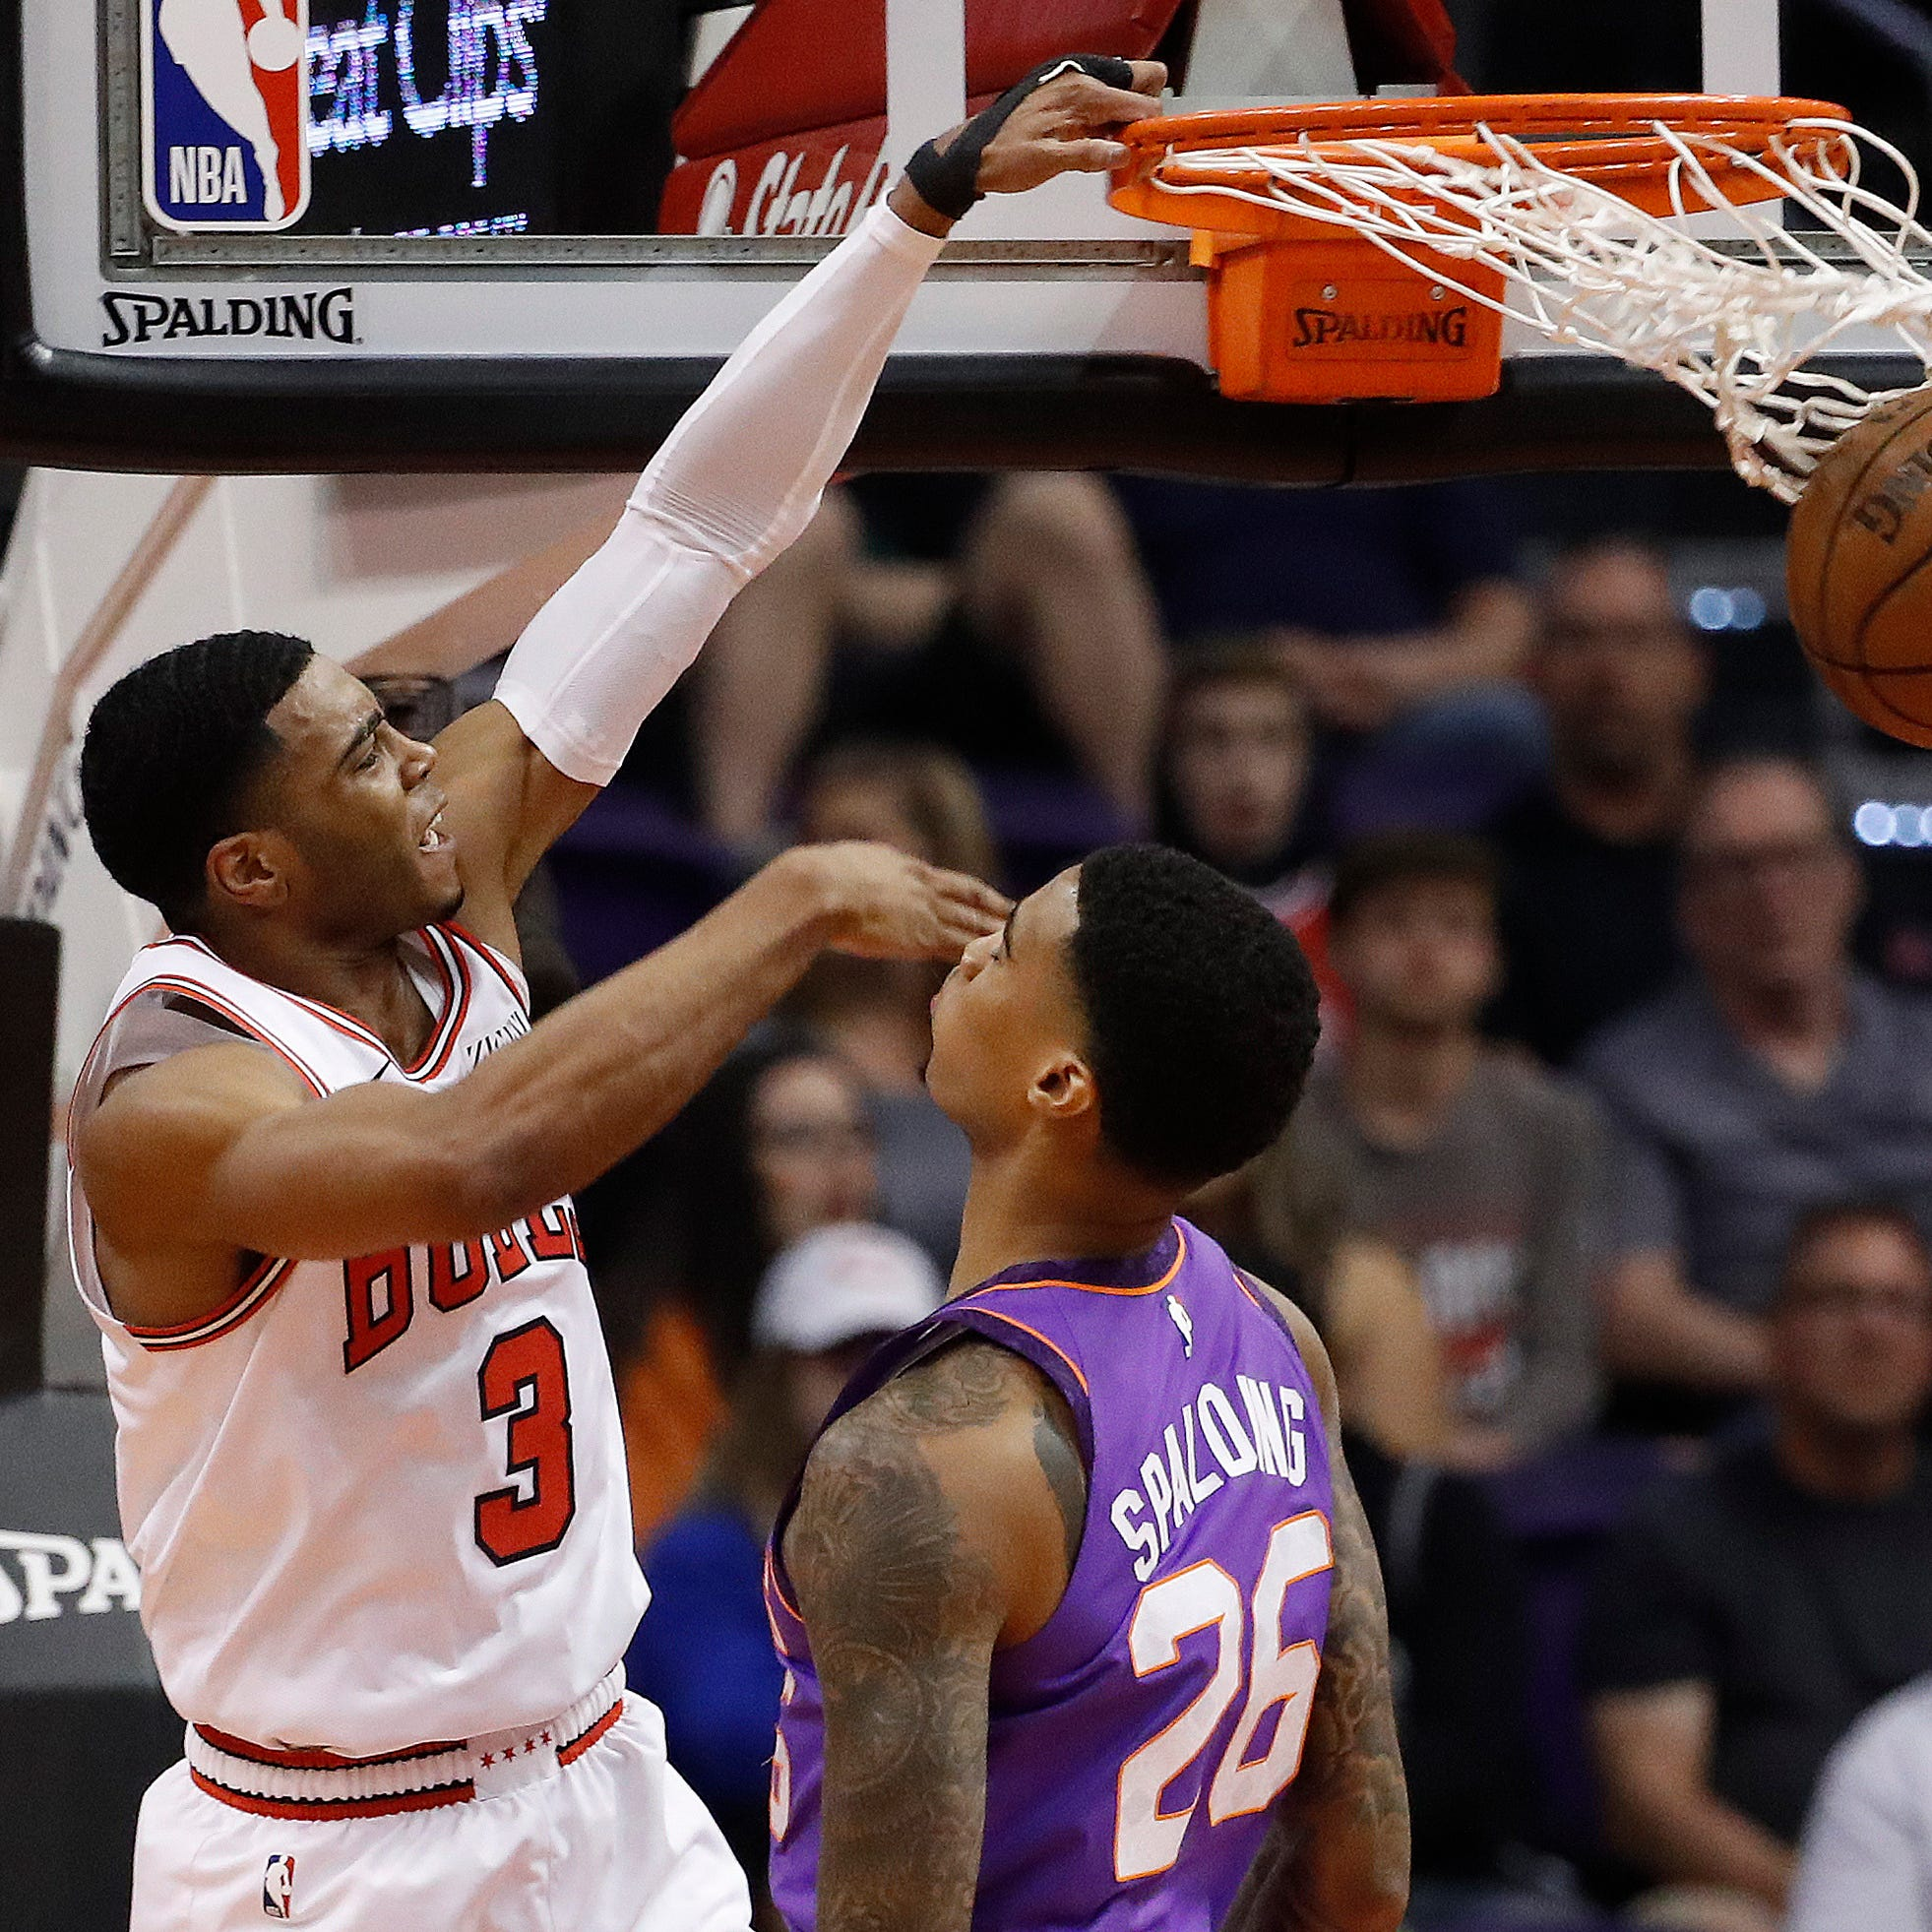 Bulls' Shaquille Harrison gets back at the Suns, who cut him before the season started